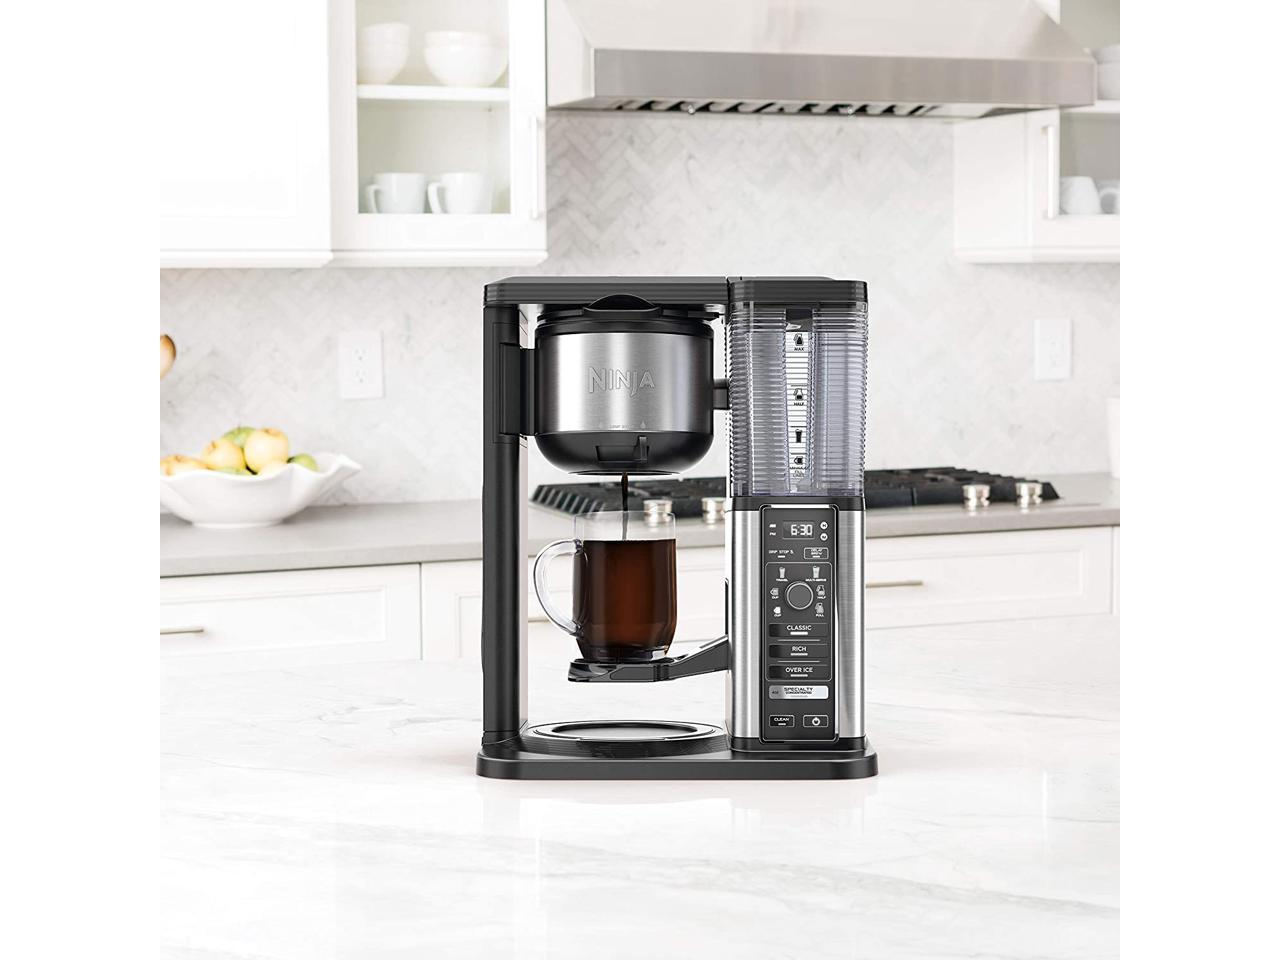 Ninja CM407 Specialty Coffee Maker with Thermal Carafe and ...